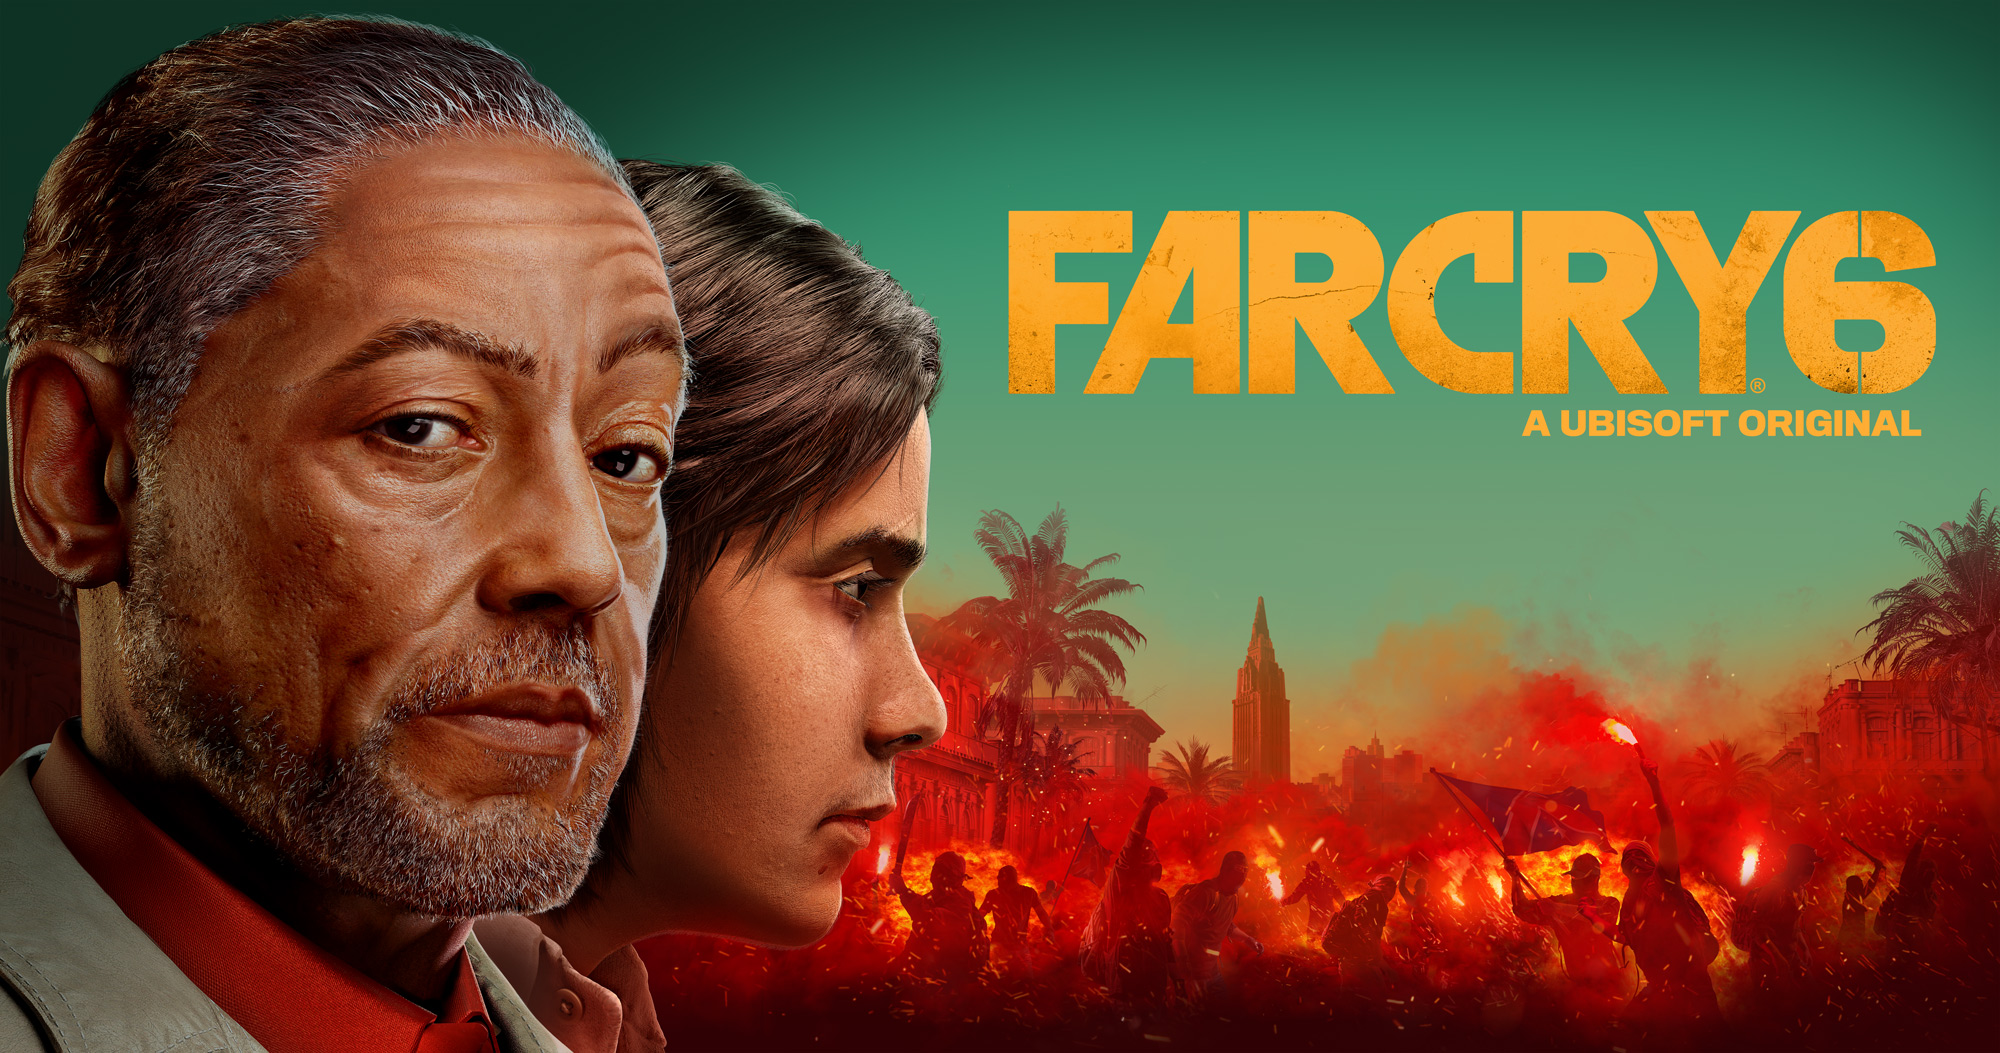 FAR CRY® 6 will support Tobii Eye Tracking at launch on October 7, 2021